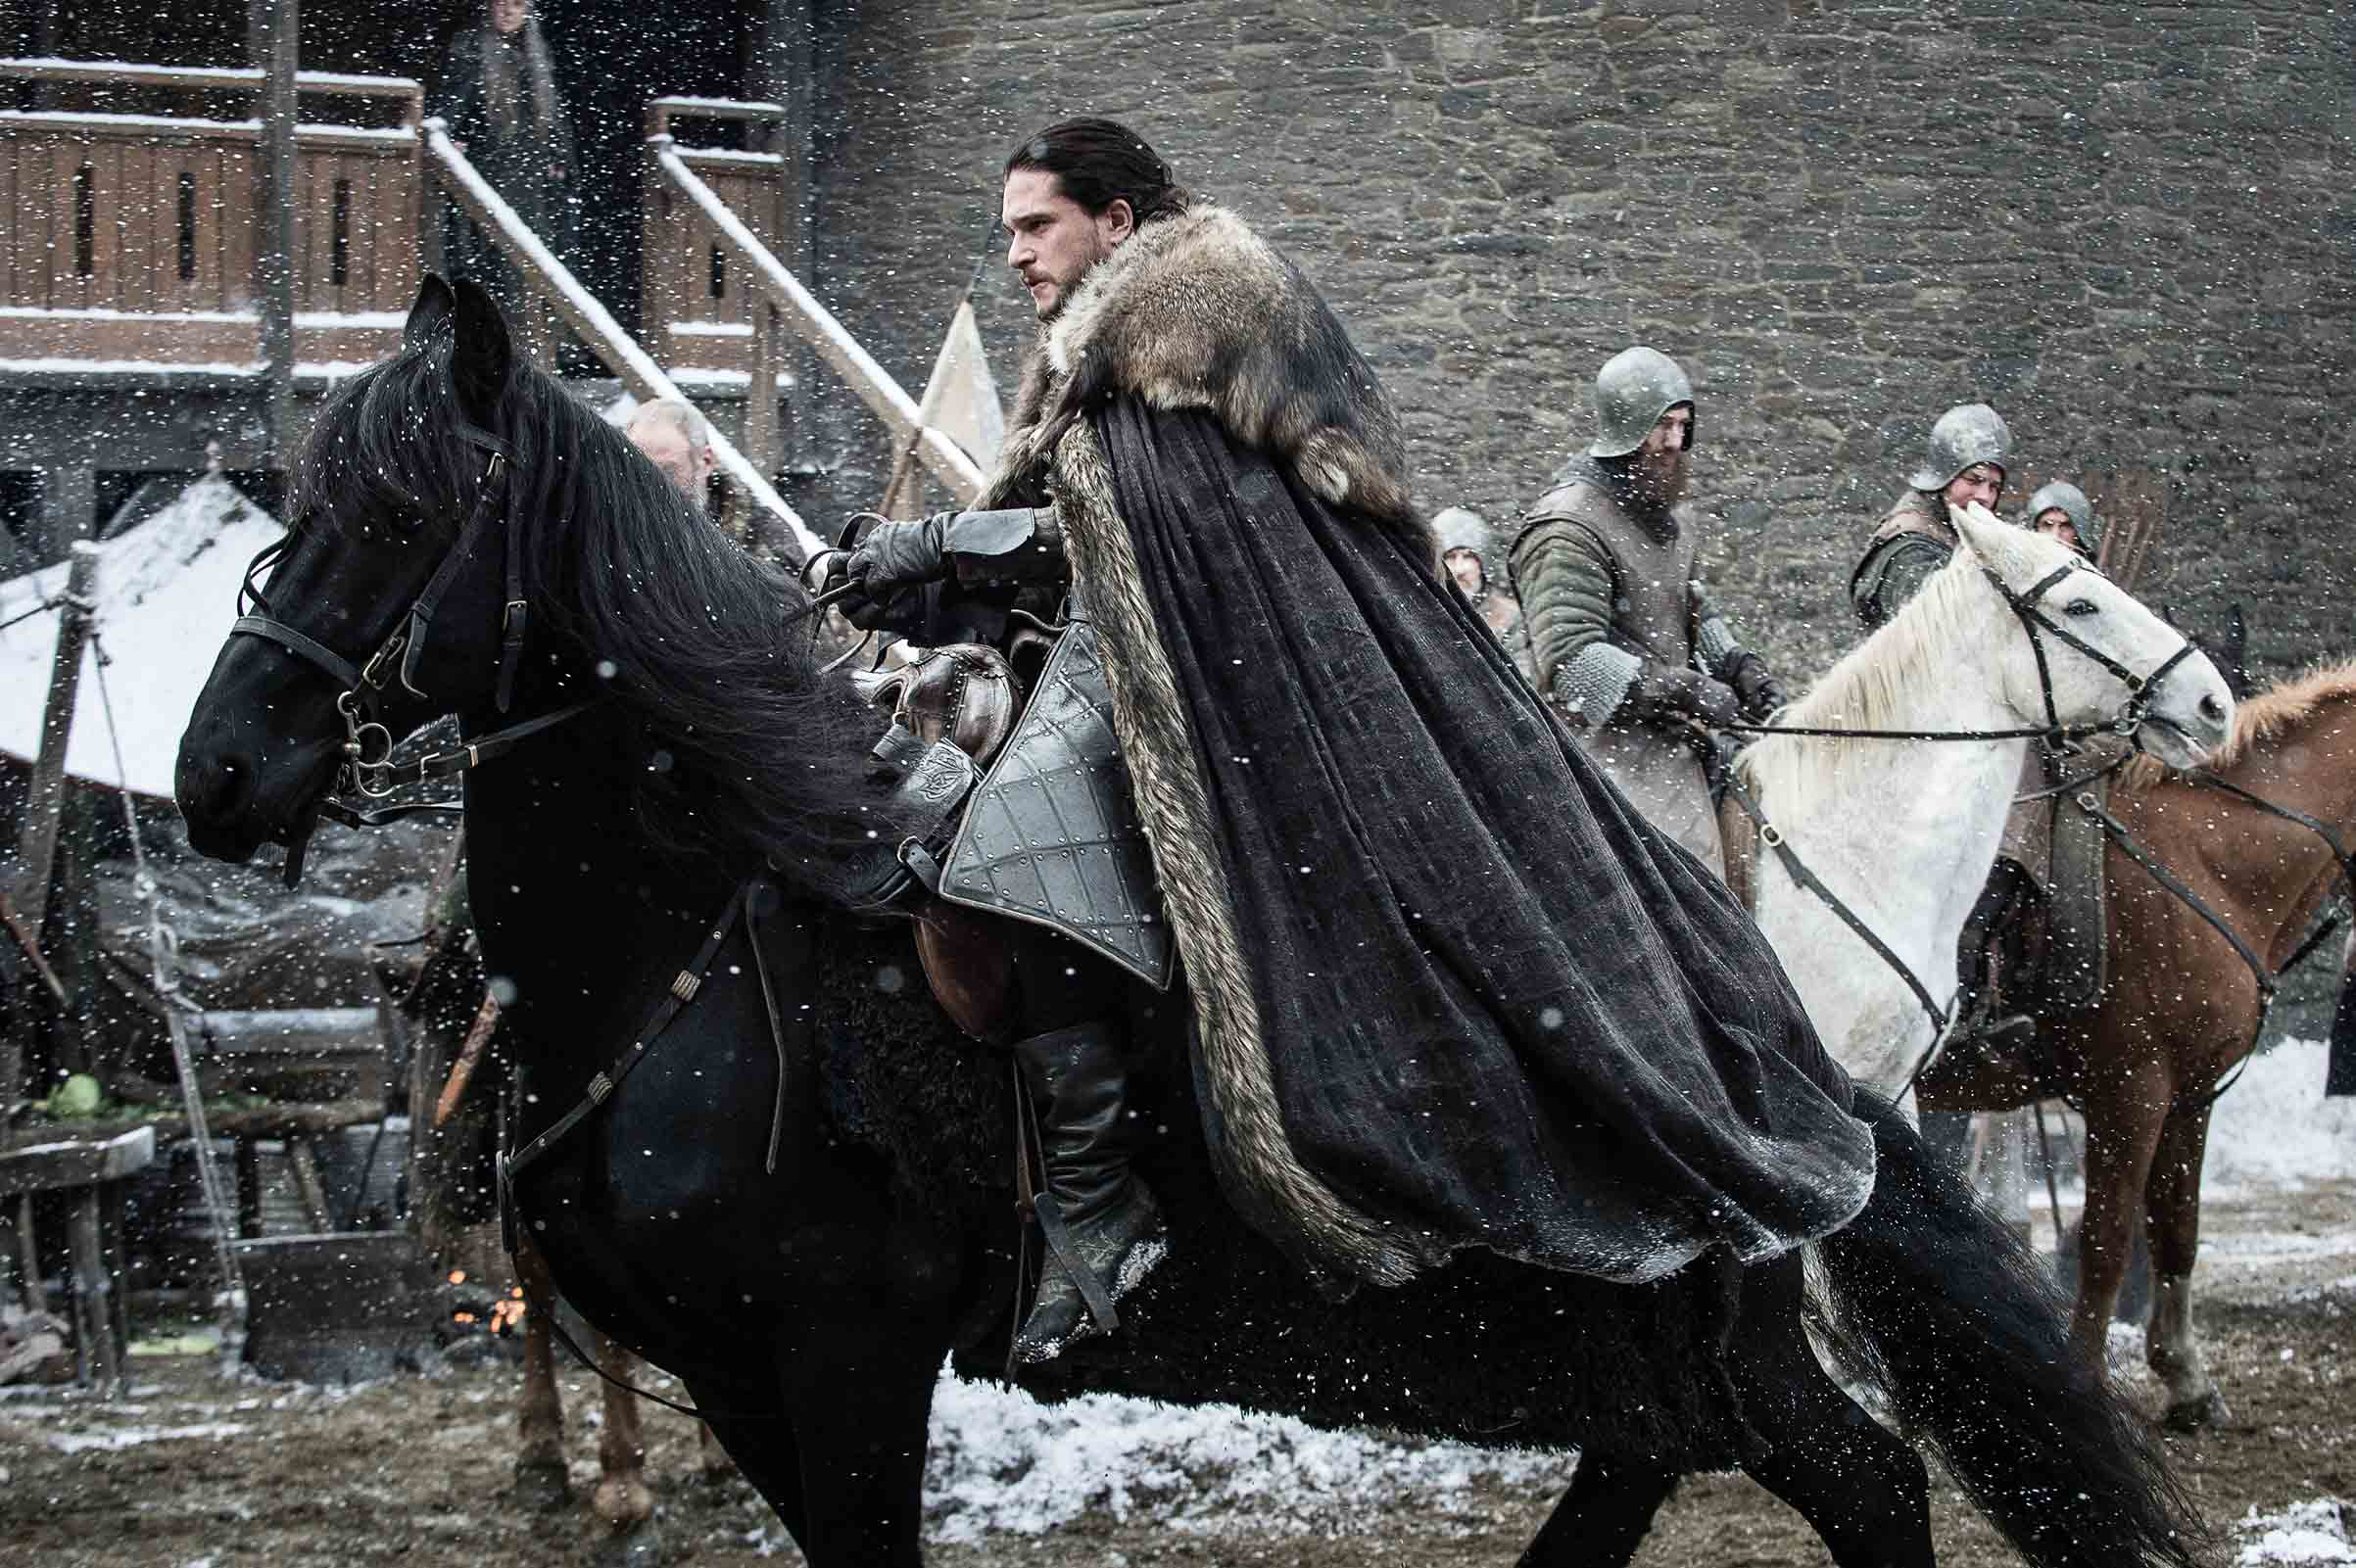 Jon Snow on a horse